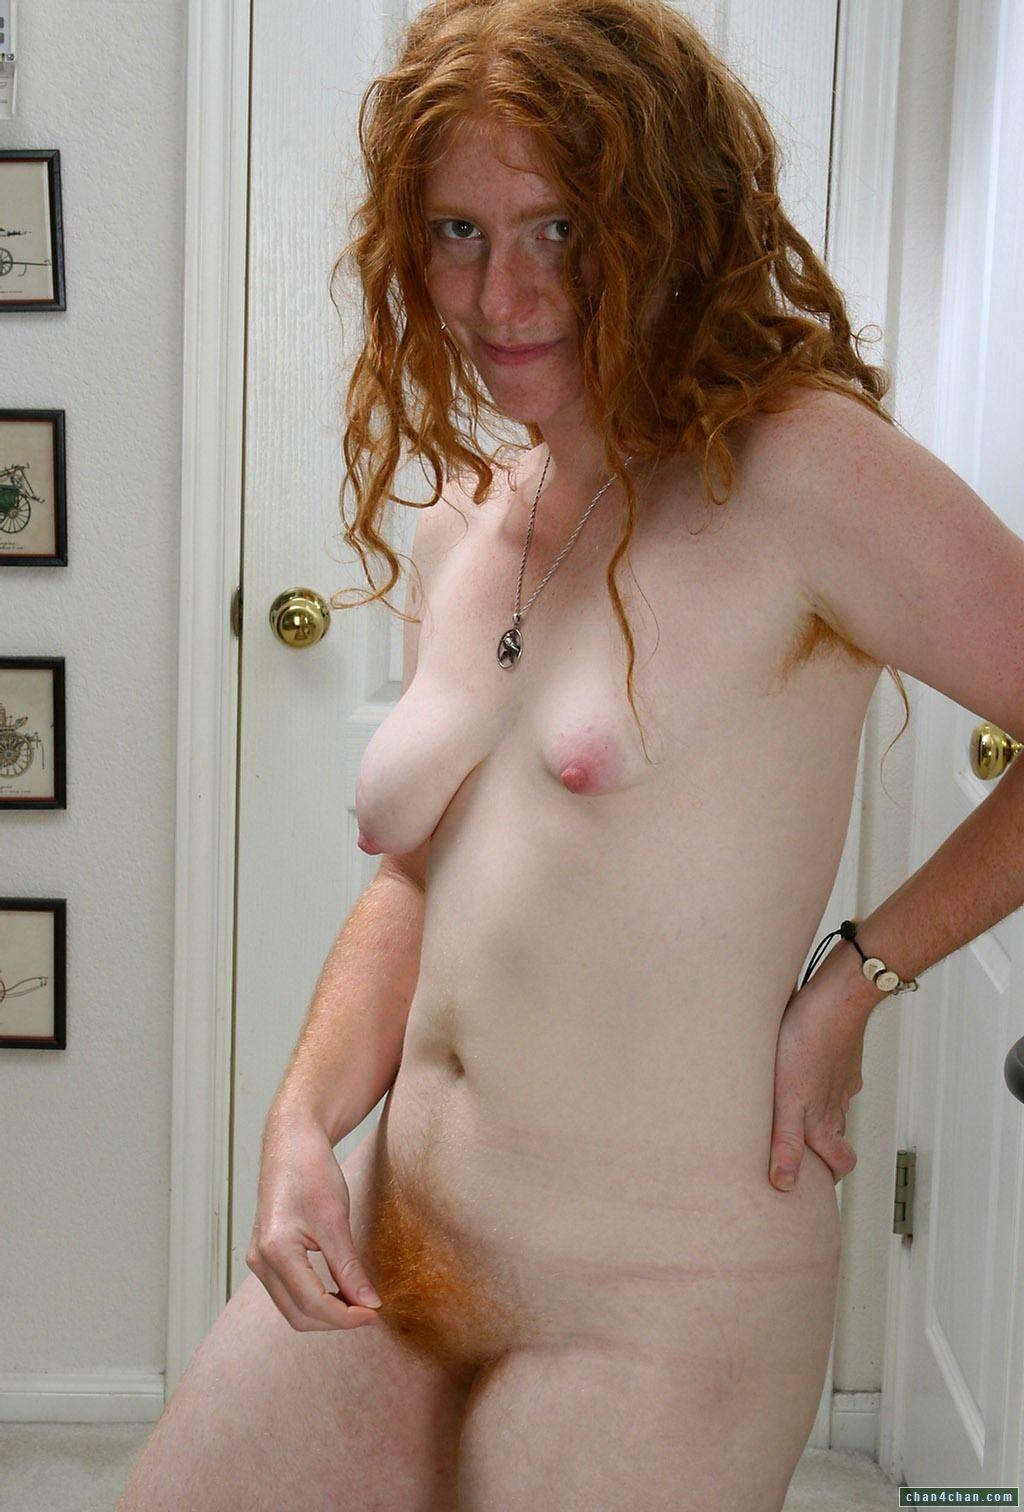 naked Weird strange girl gallery